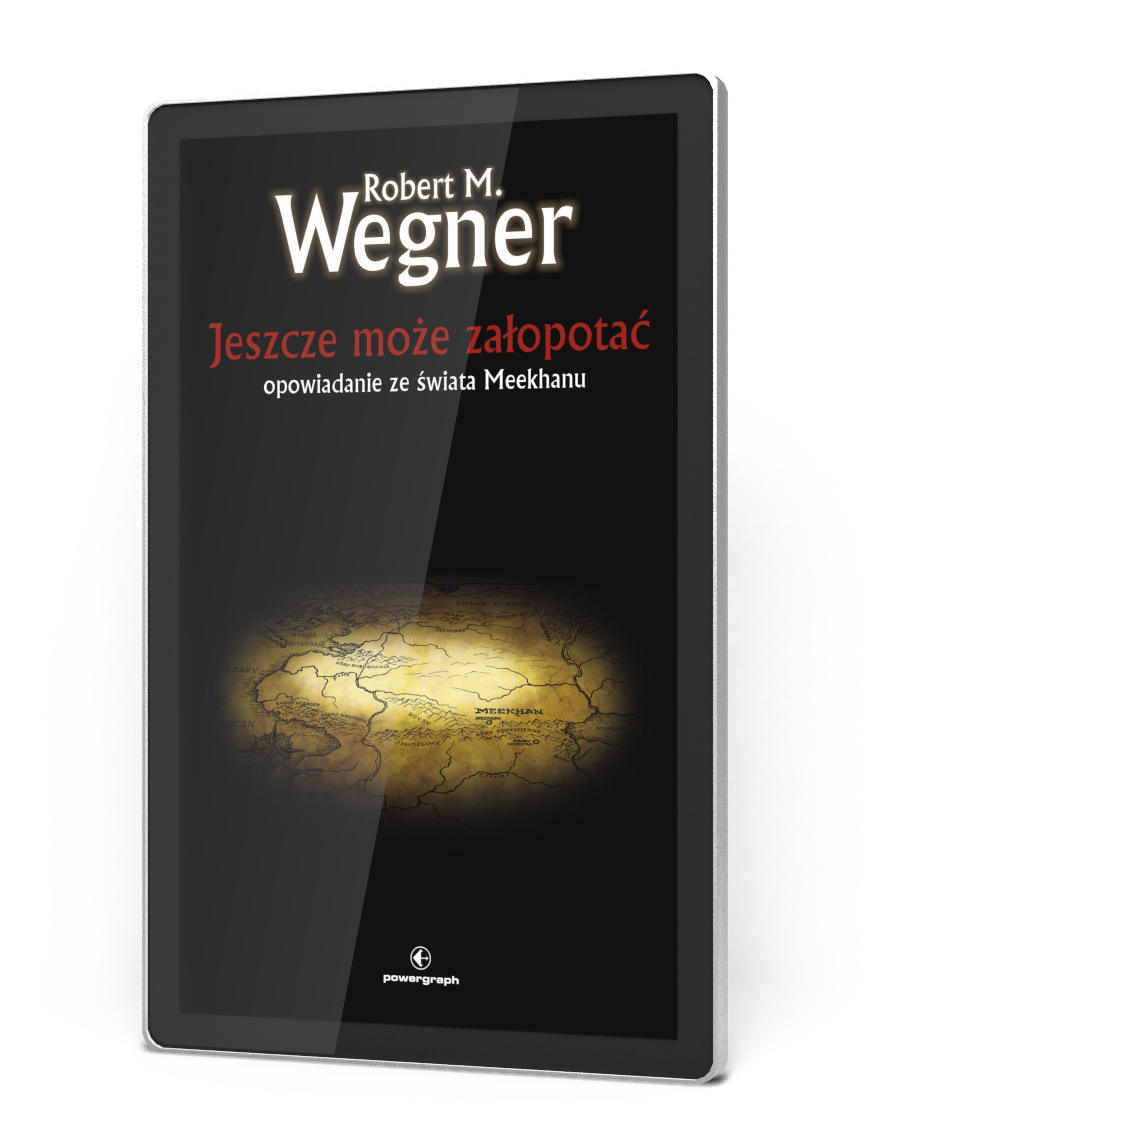 Rendered wegner jmz front